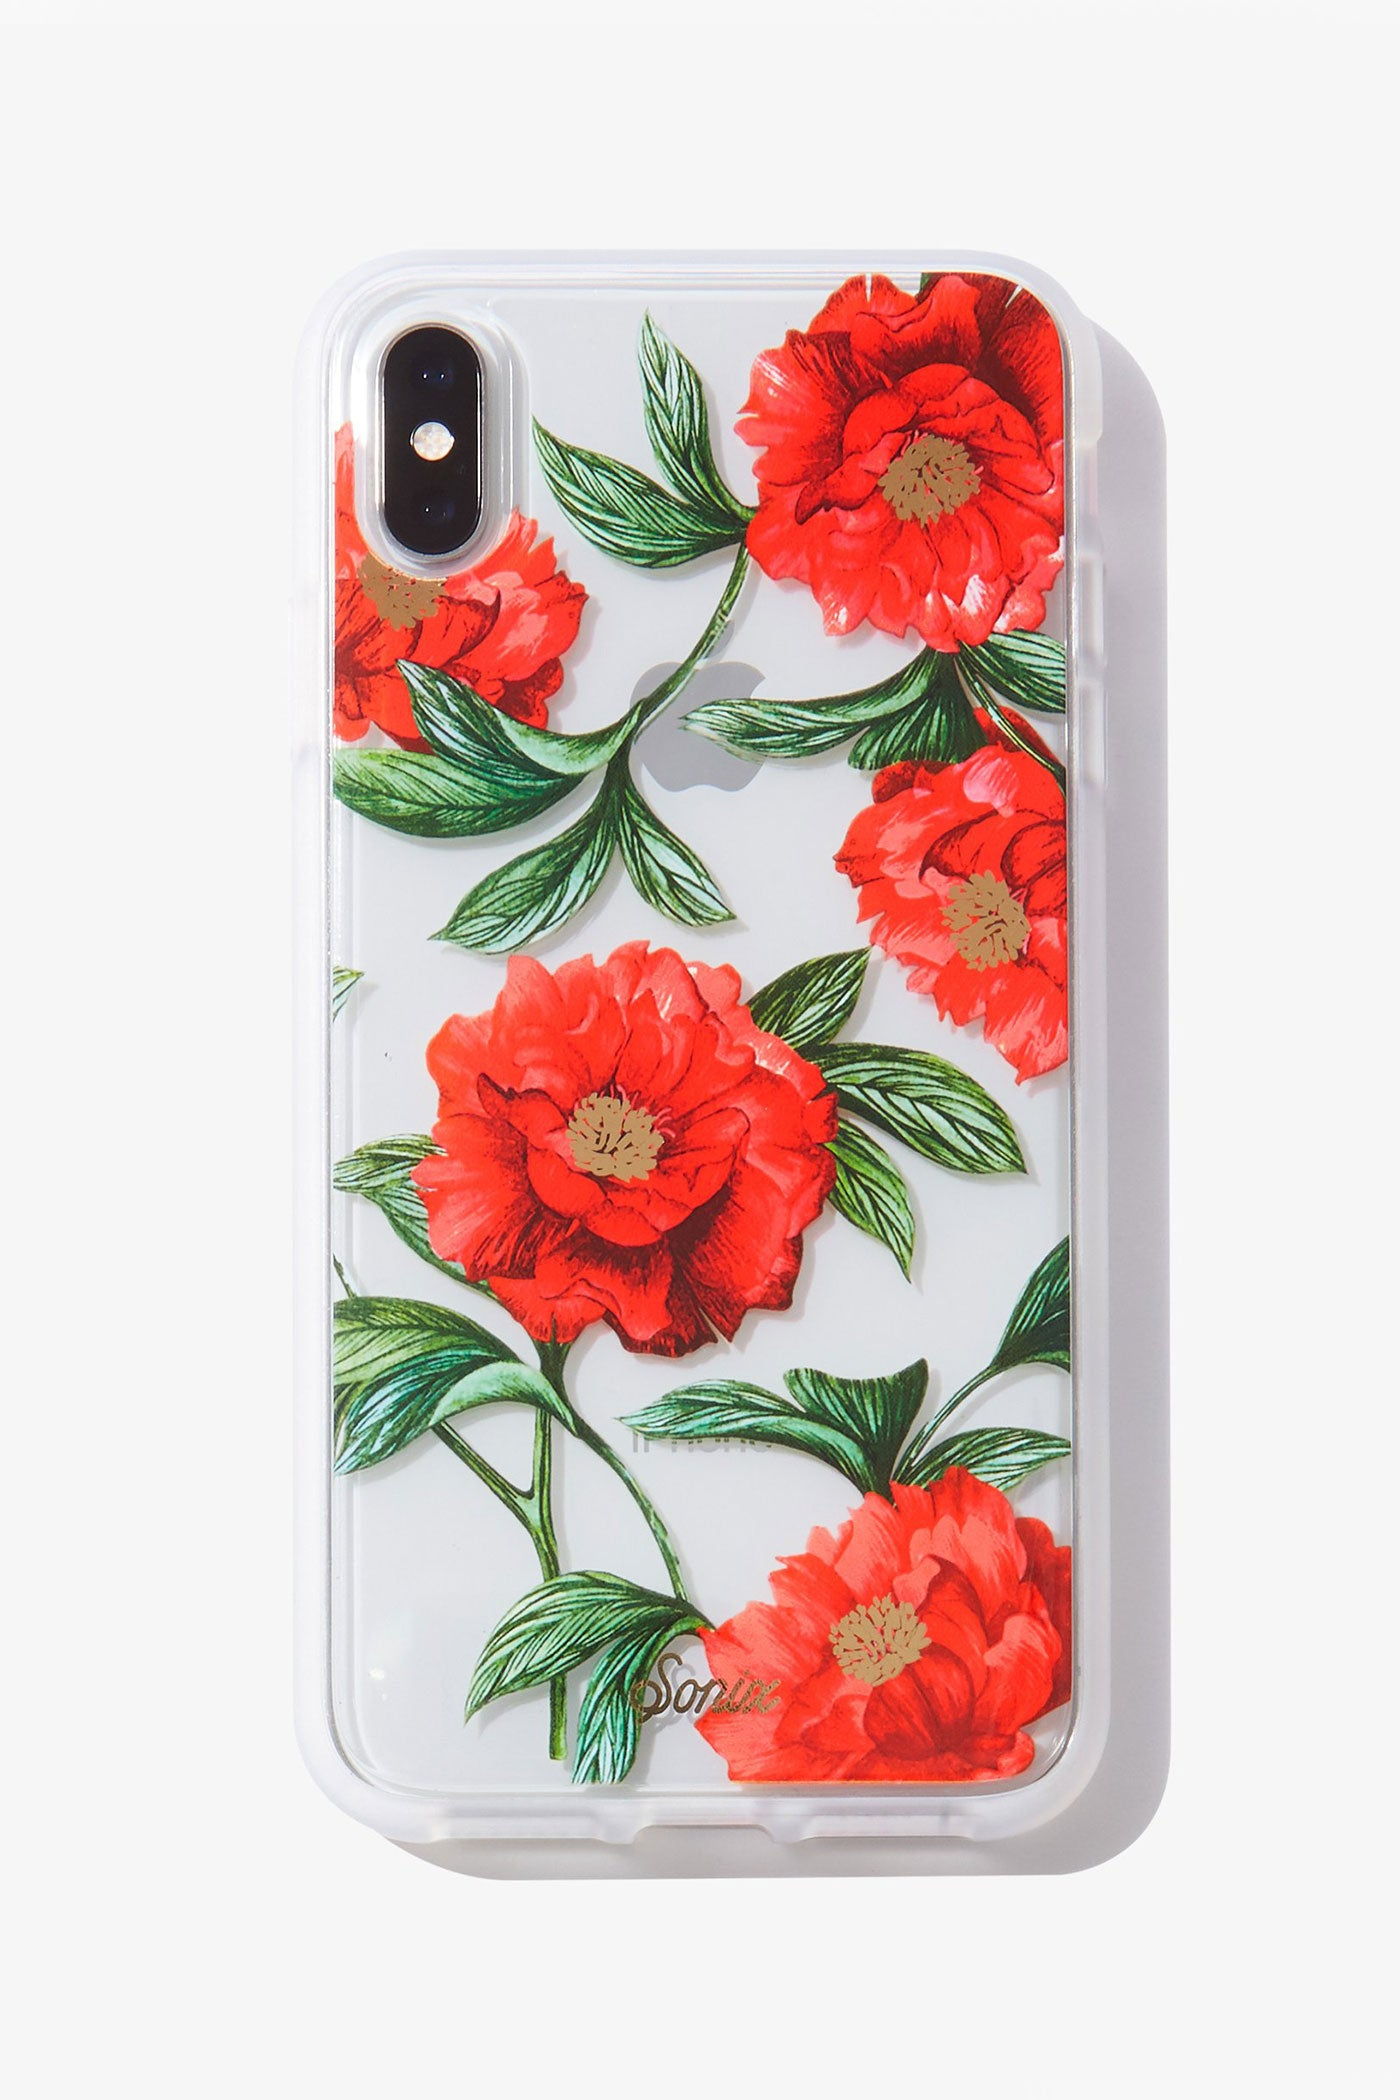 Spring Fling XS MAX iPhone Case by Sonix